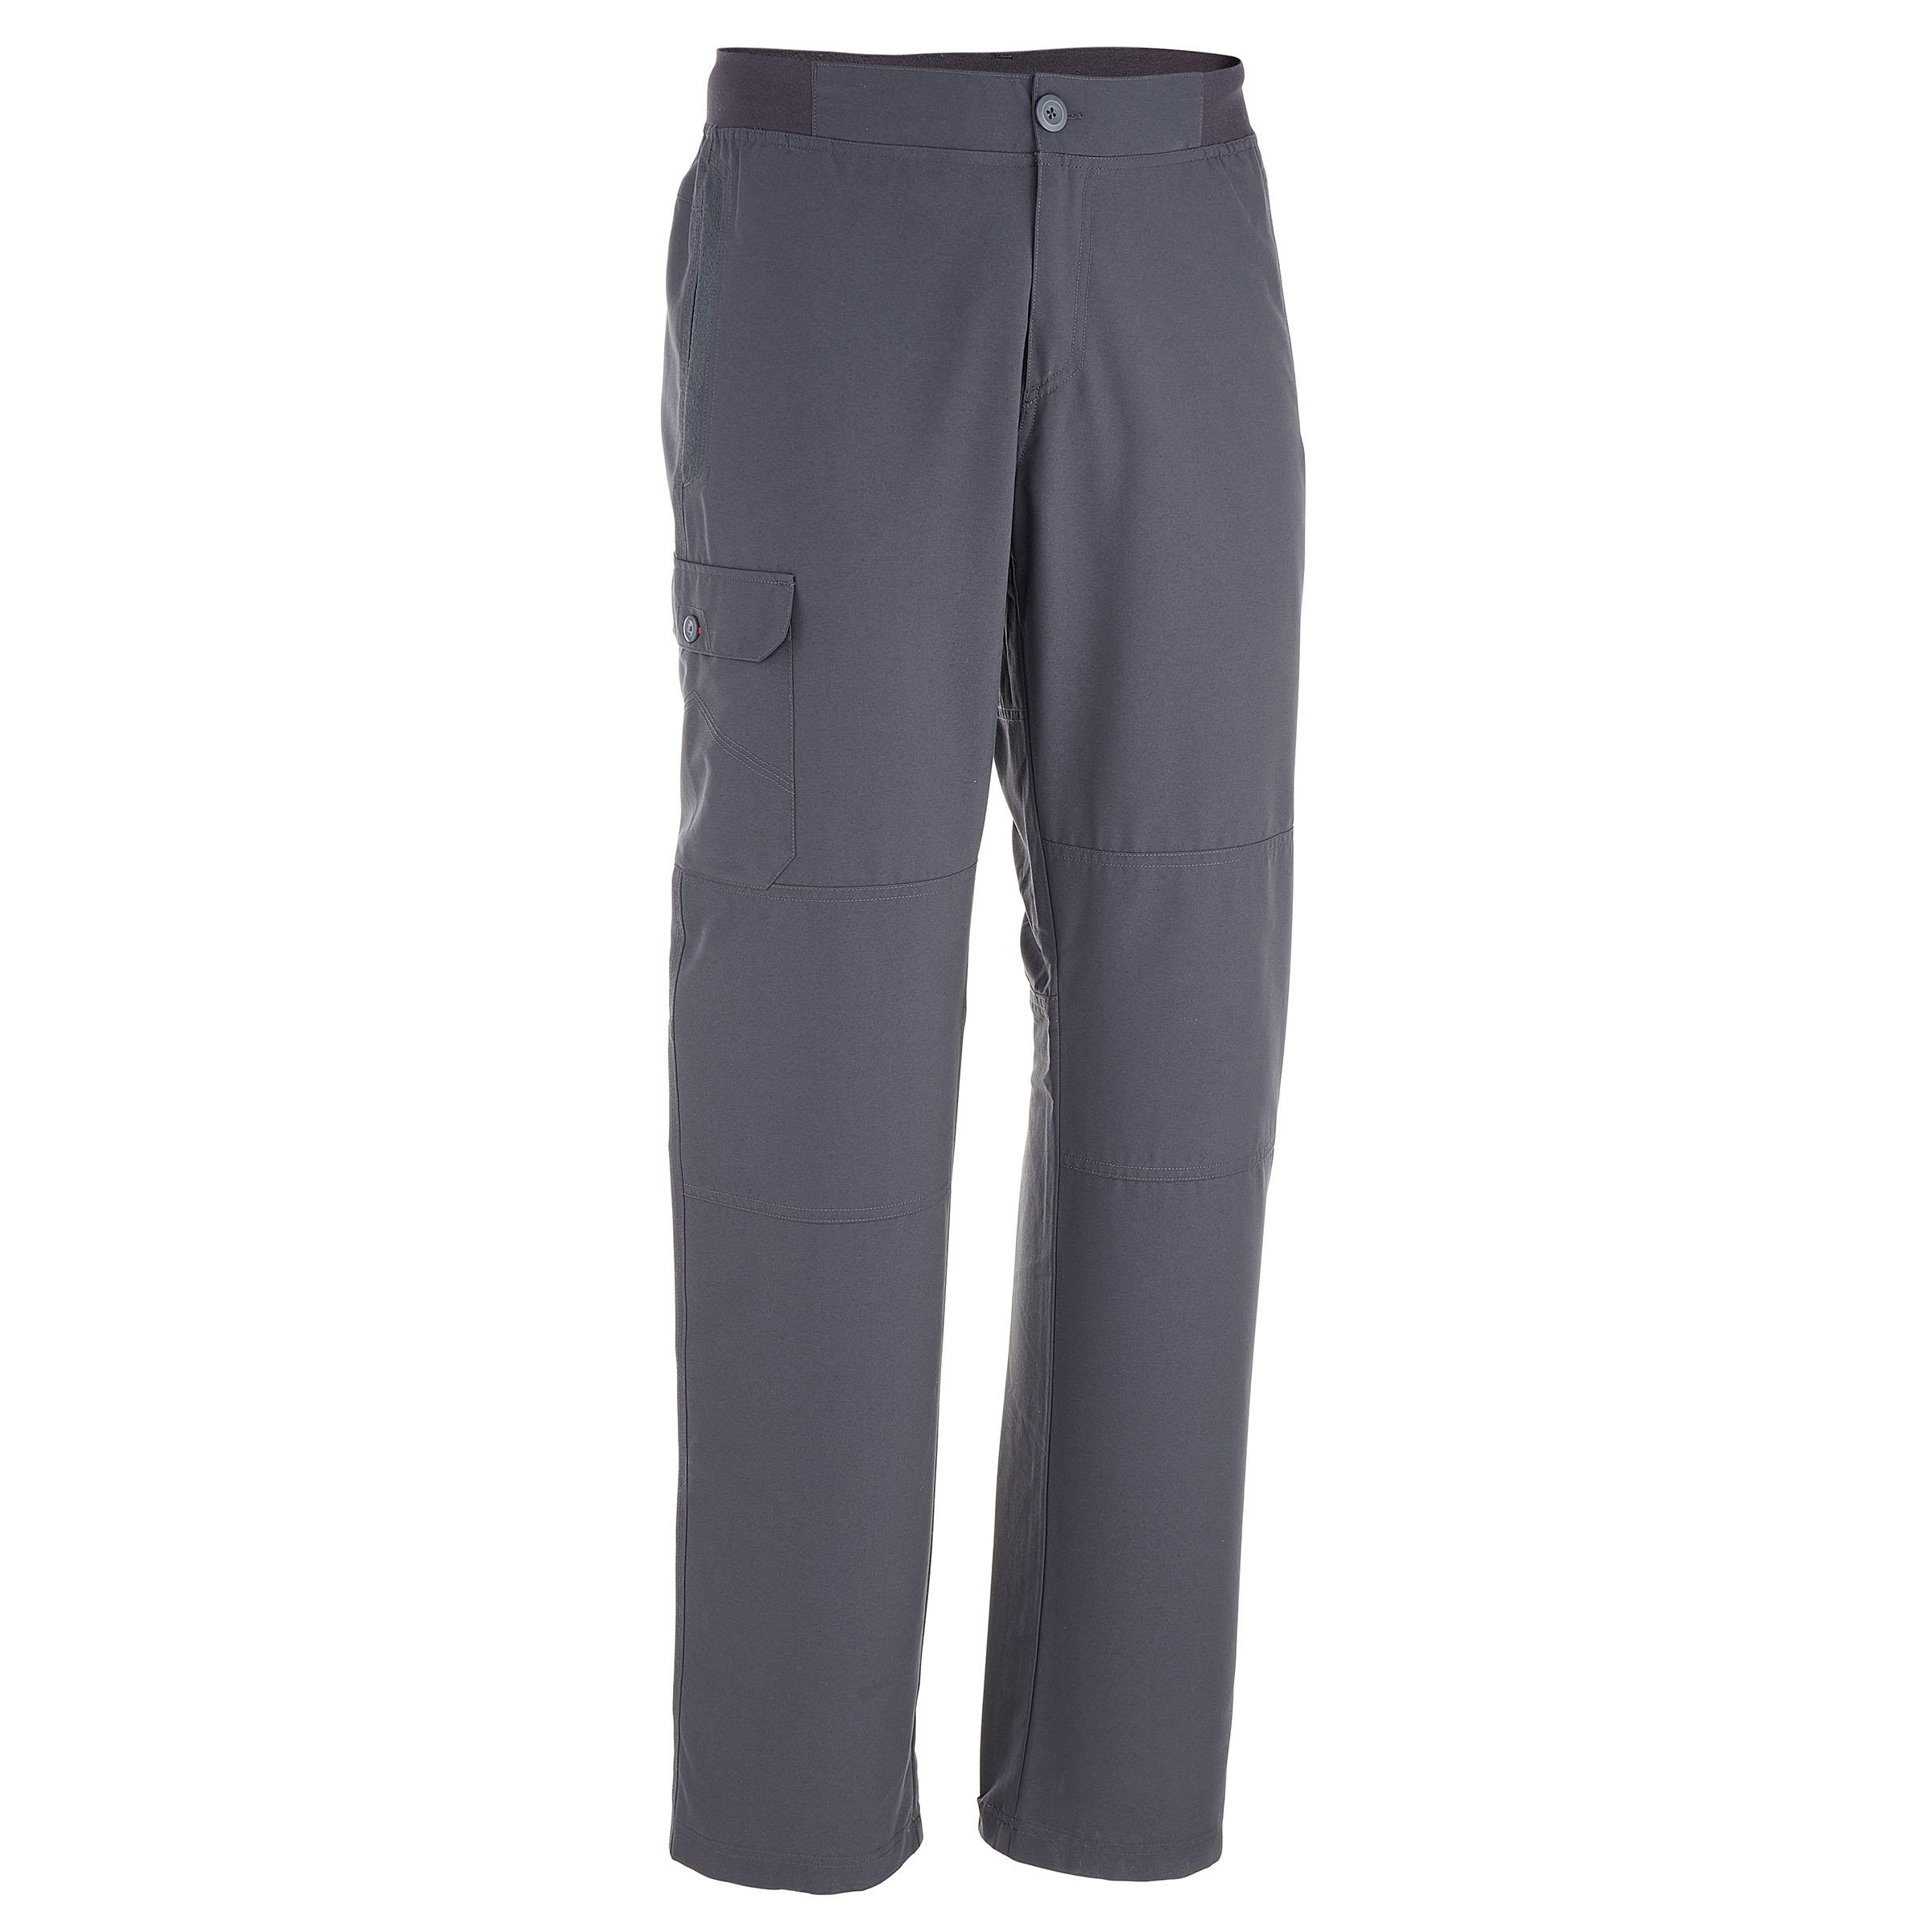 Arpenaz 50 Men's Plain Hiking Trousers - Grey